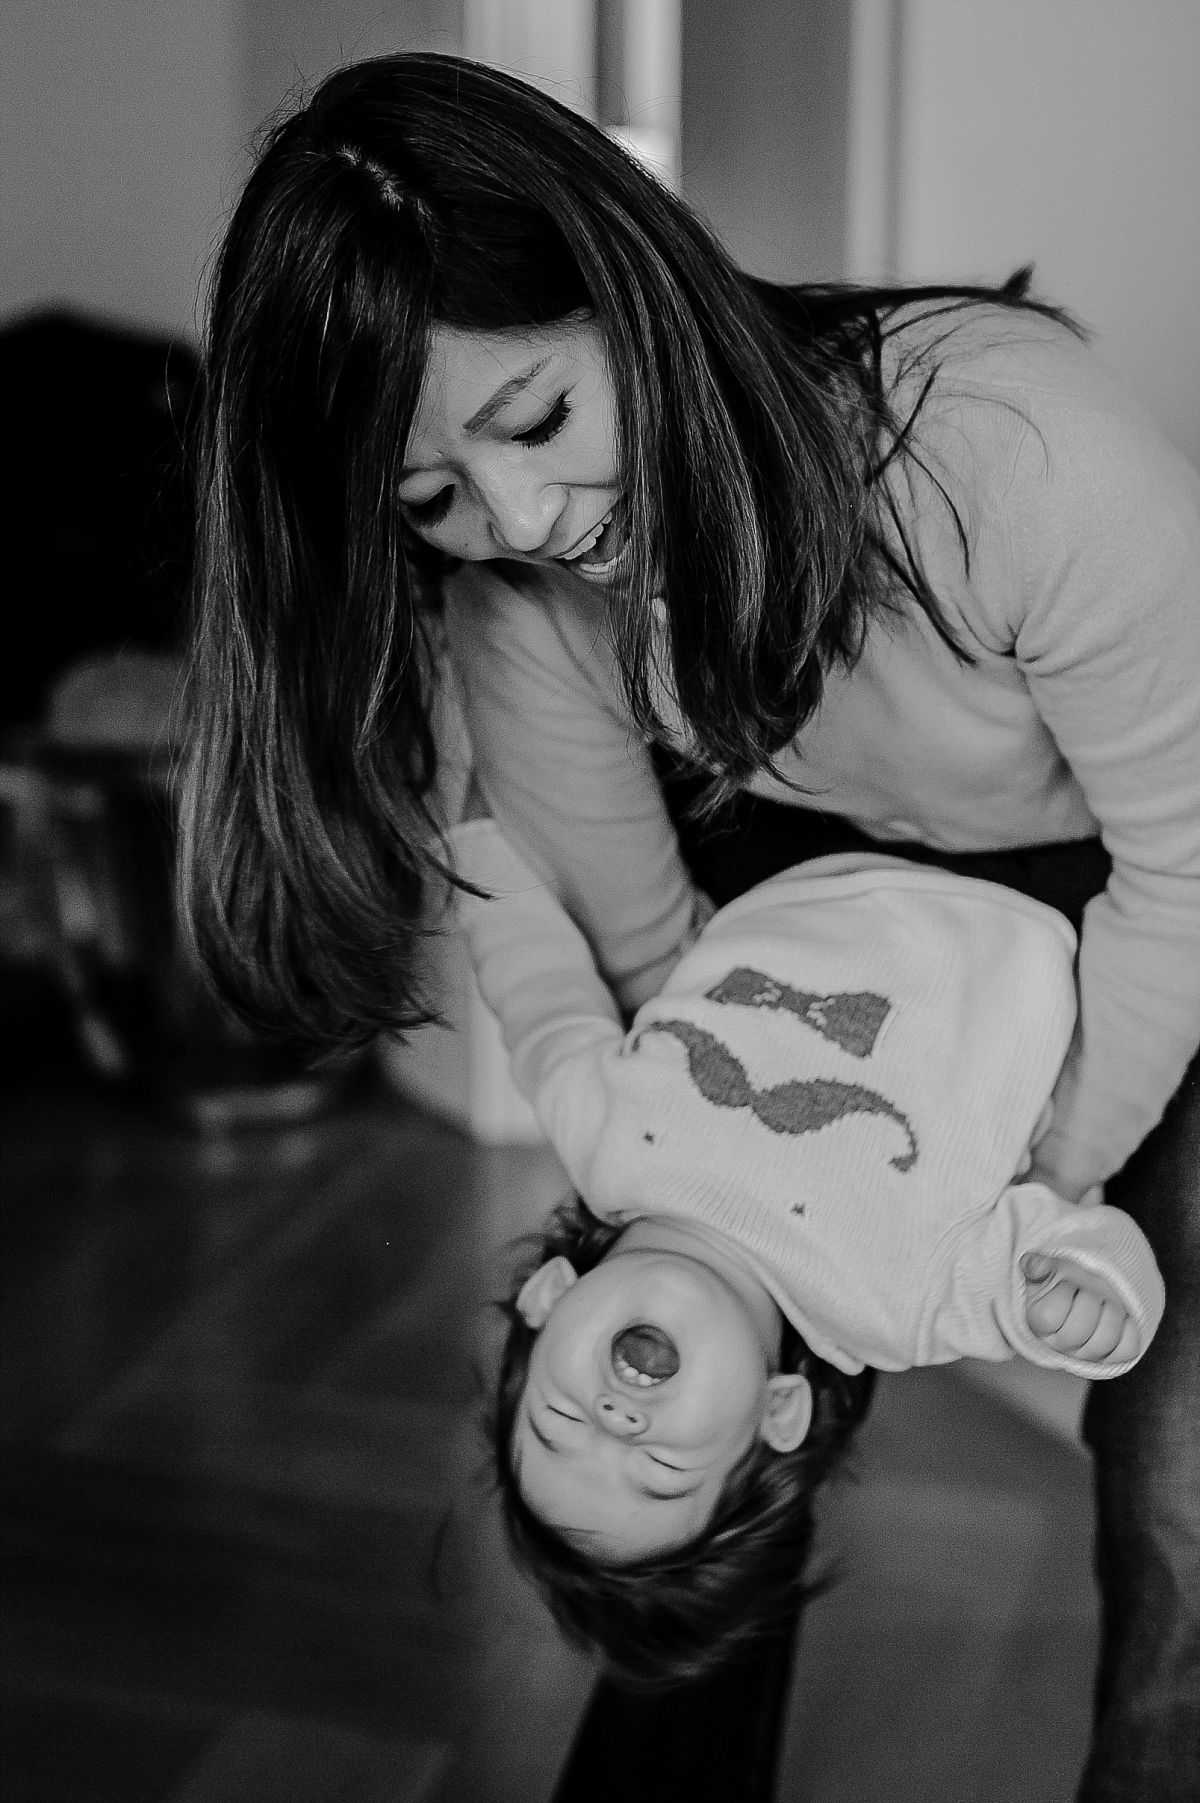 mom throwing daughter round and making daughter laugh during candid family photo session in nyc. image by nyc family photographer krystil mcdowall